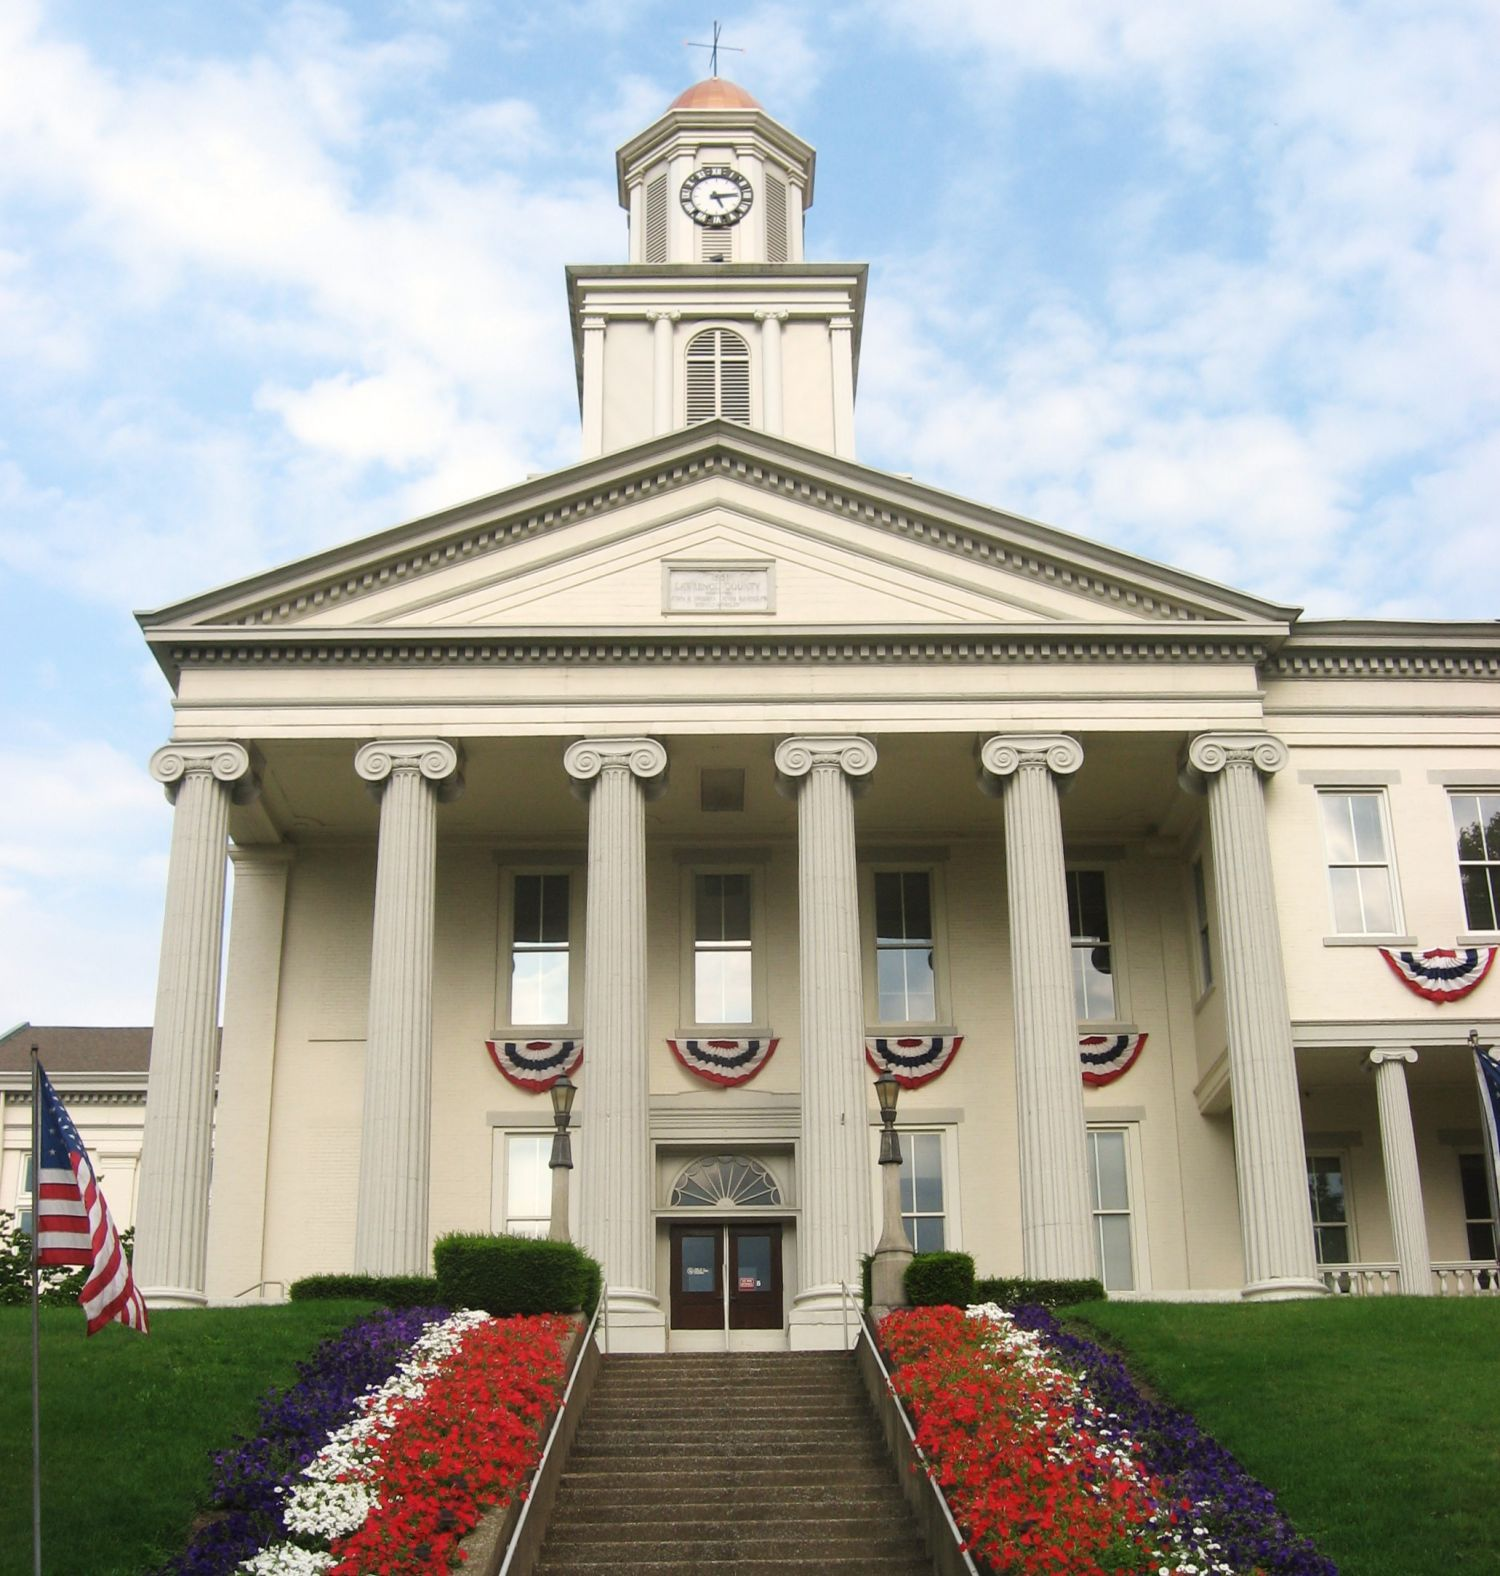 Lawrence County Courthouse - Photo Credit: Nyttend [Public domain], from Wikimedia Commons